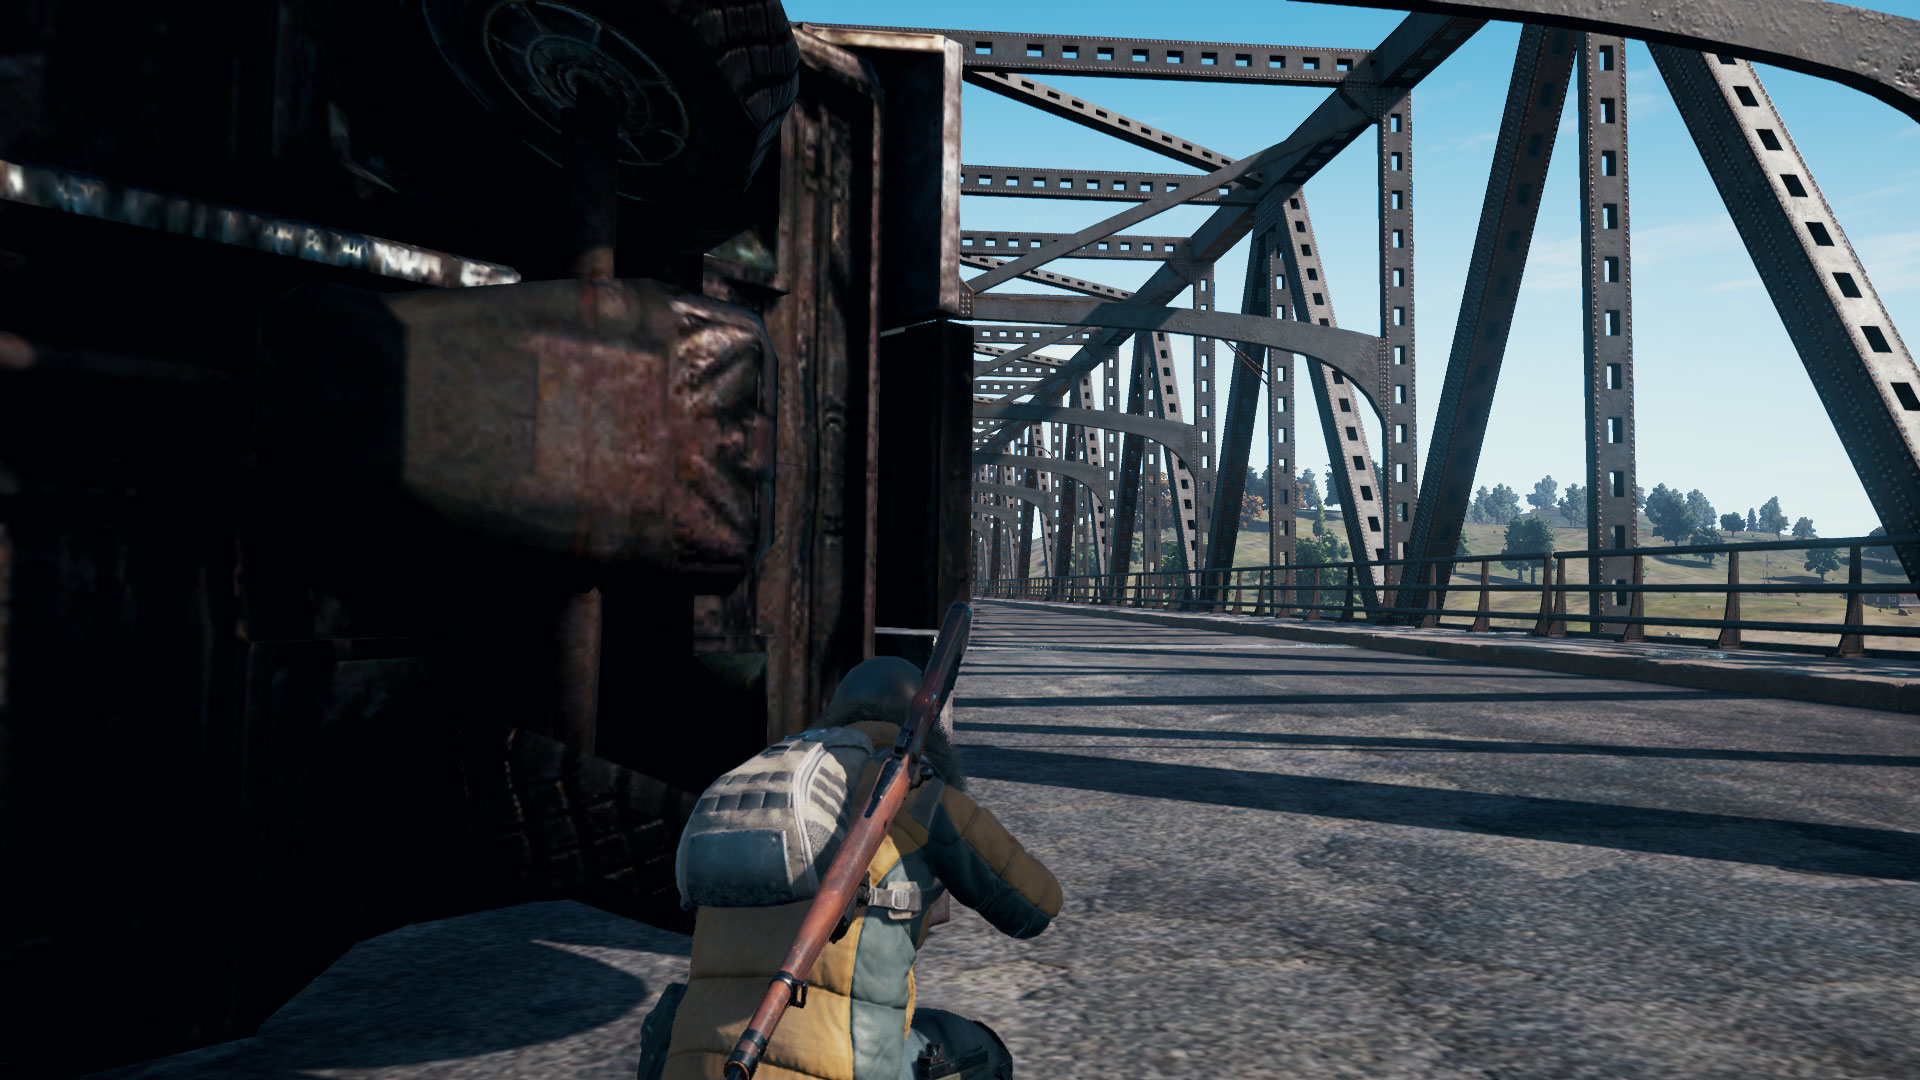 In-game screenshot of PUBG player camping the bridge.